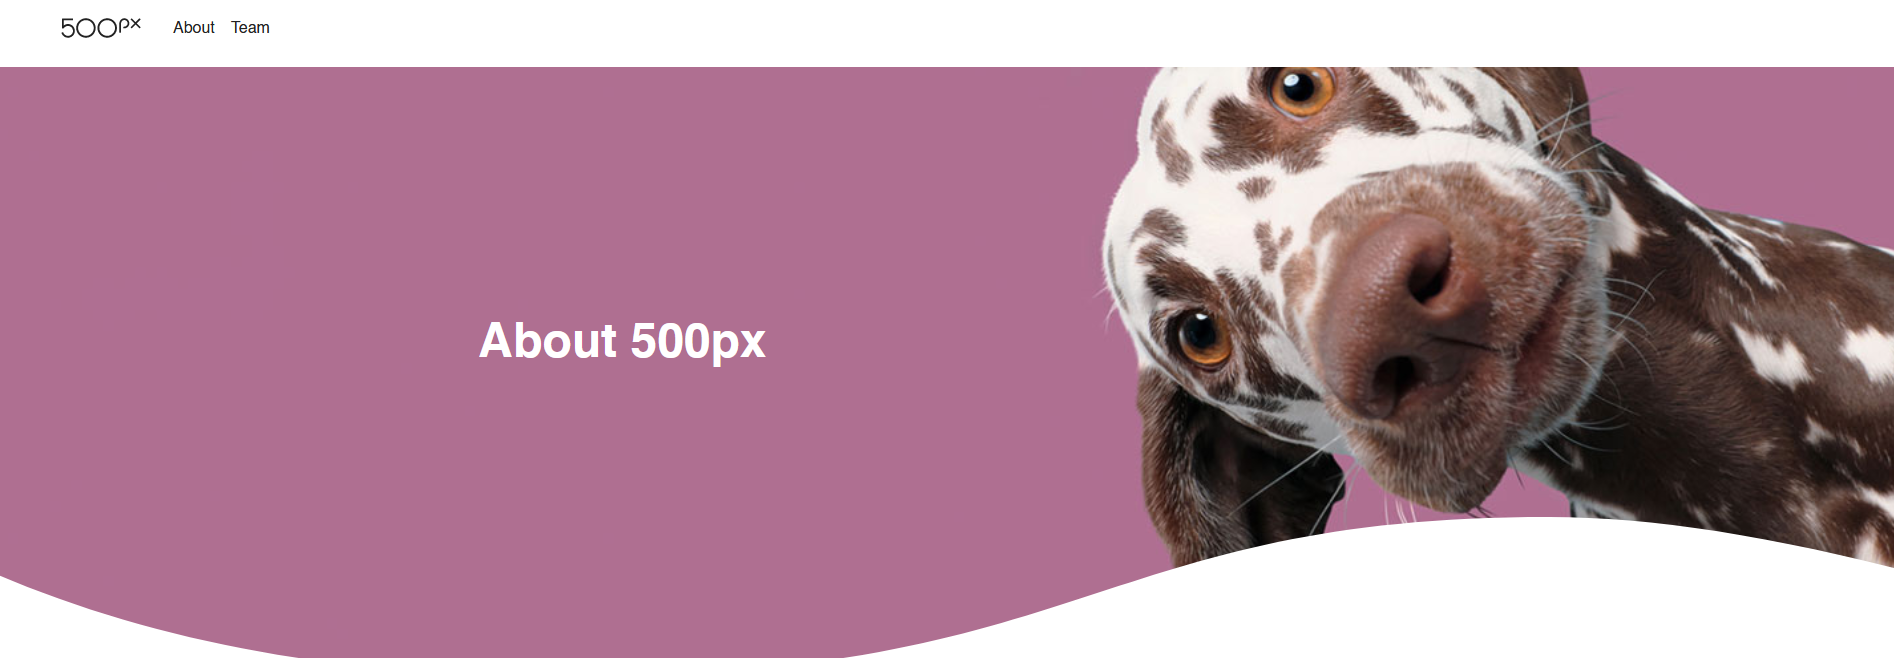 The 500px website.